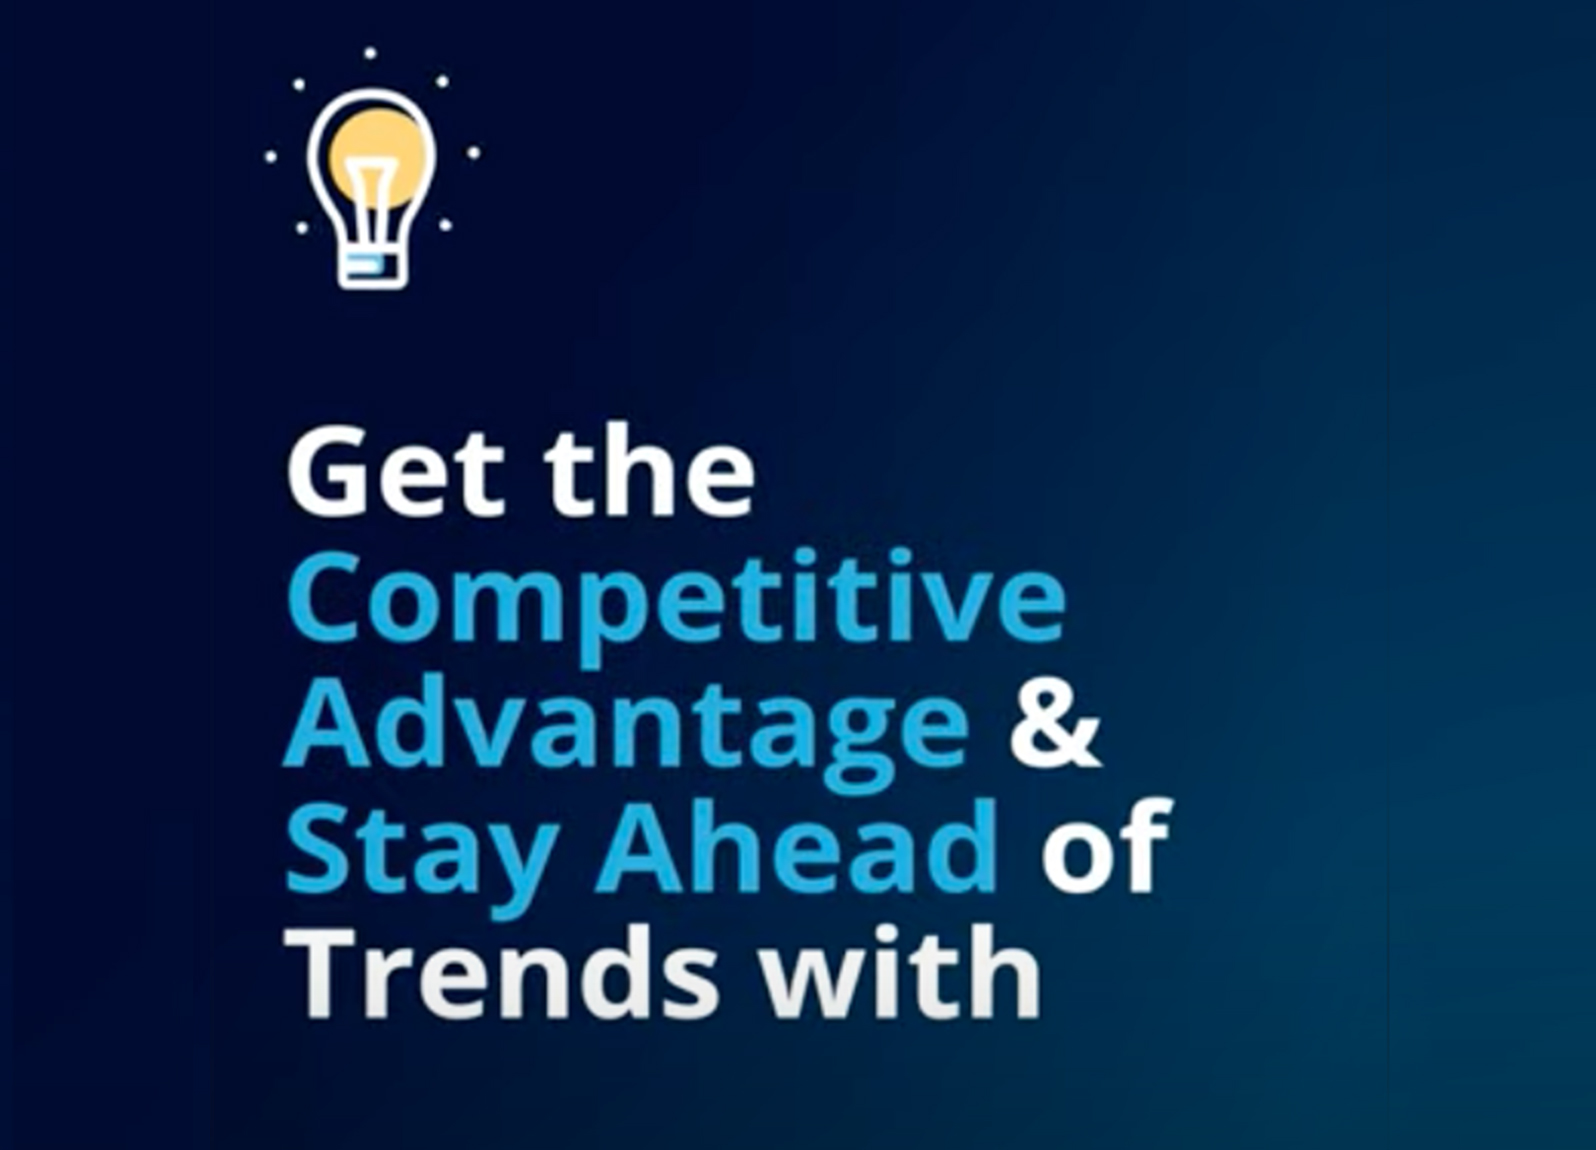 Get the competitive advantage & stay ahead of trends with